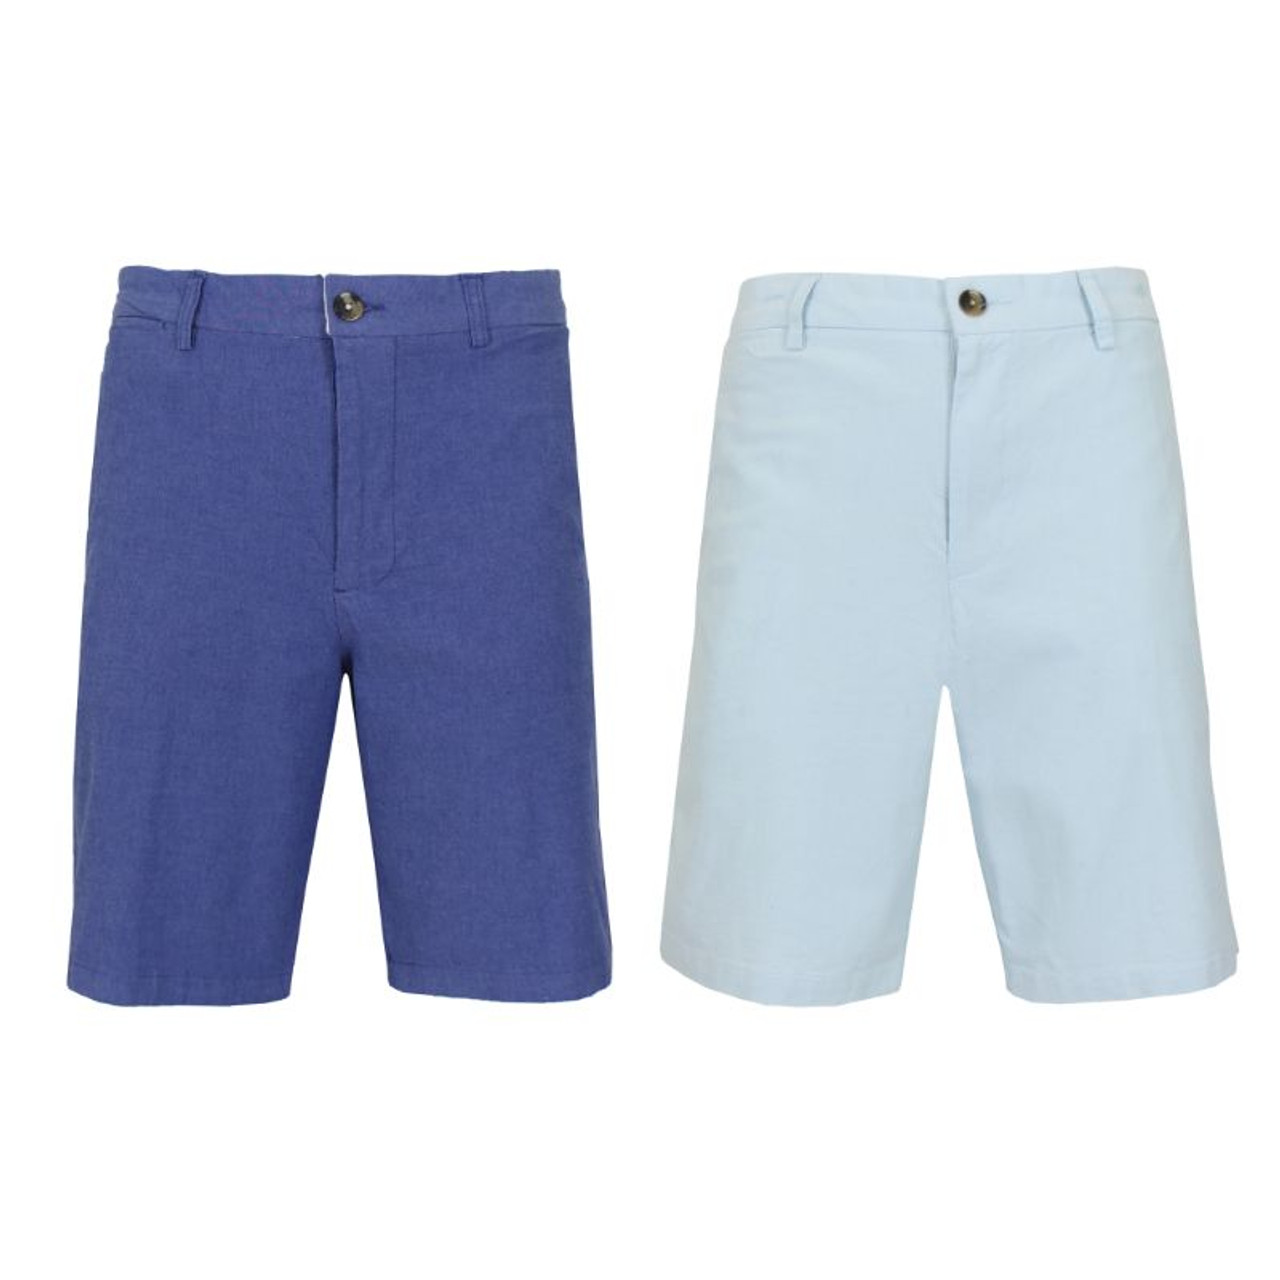 Men's Flat-Front Cotton Stretch Oxford Chino Shorts - 2 Pack